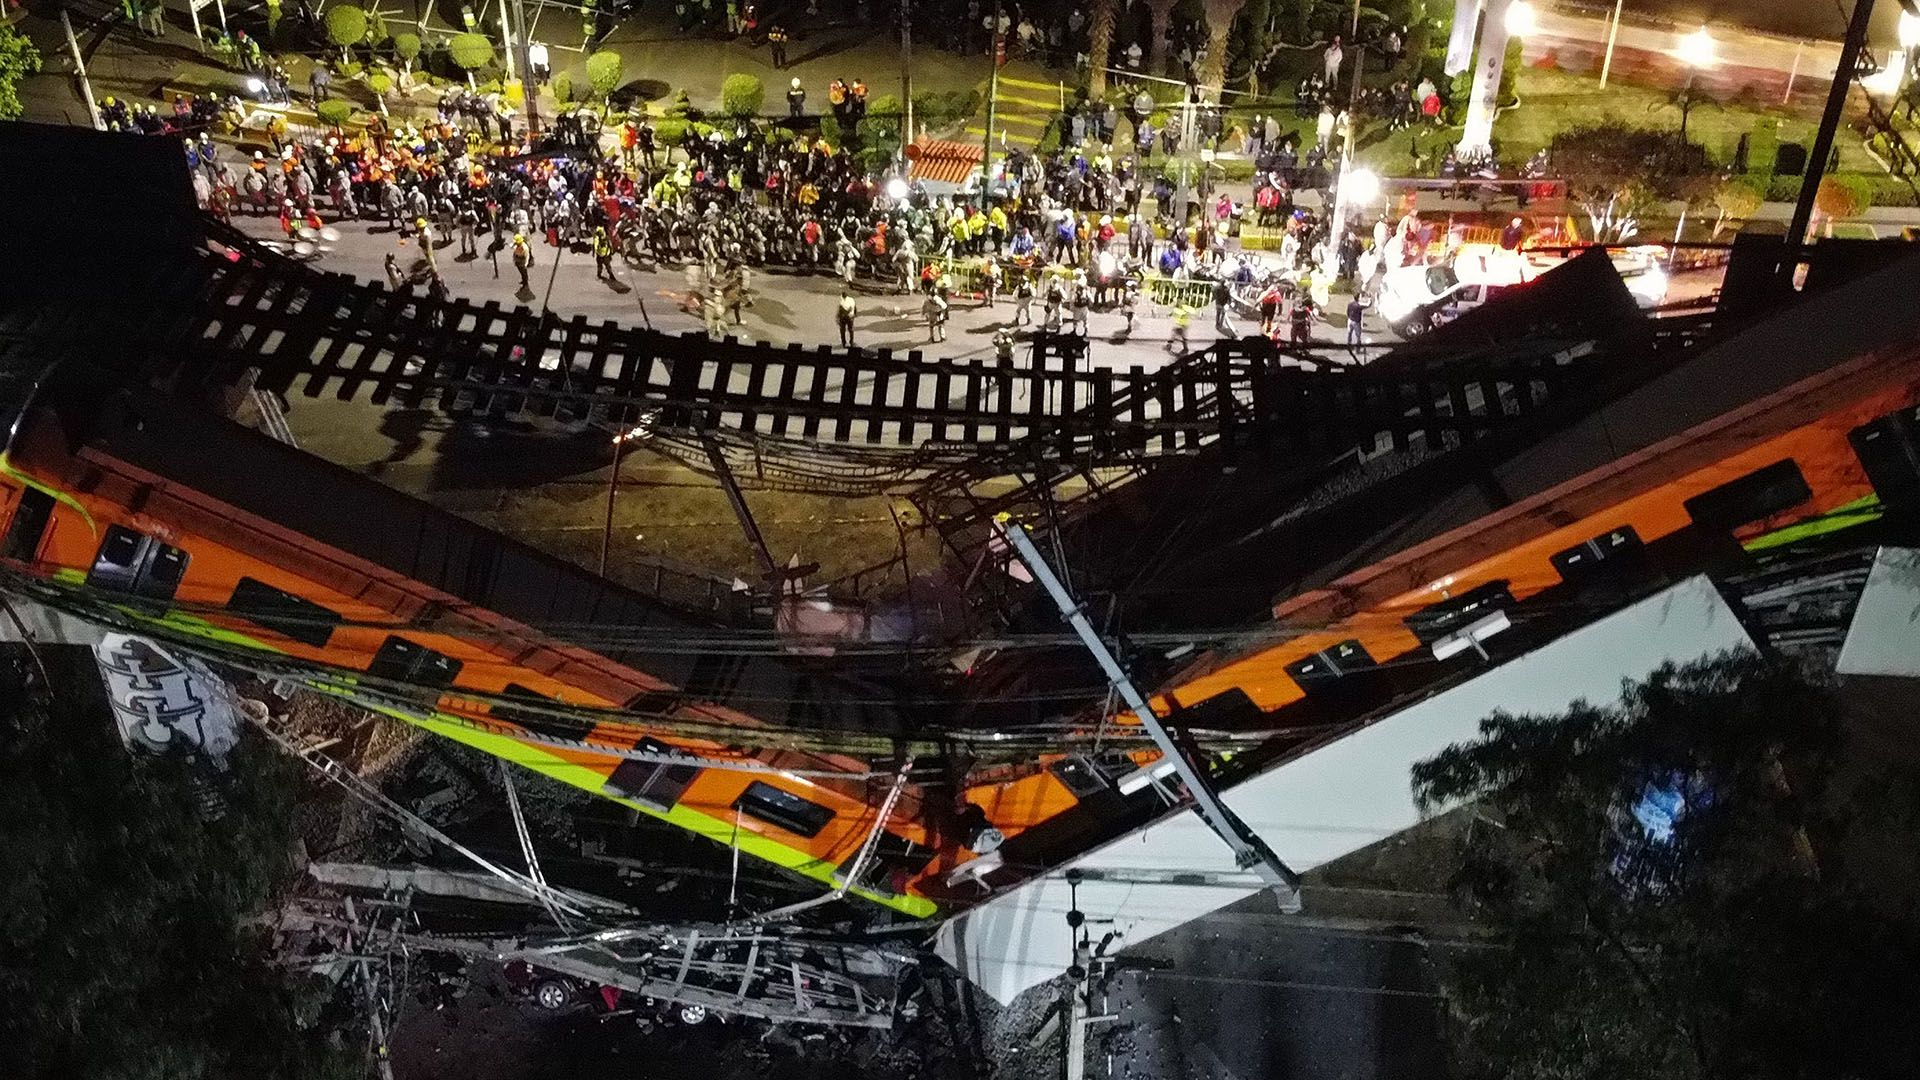 galeria accidente mexico tren metro puente